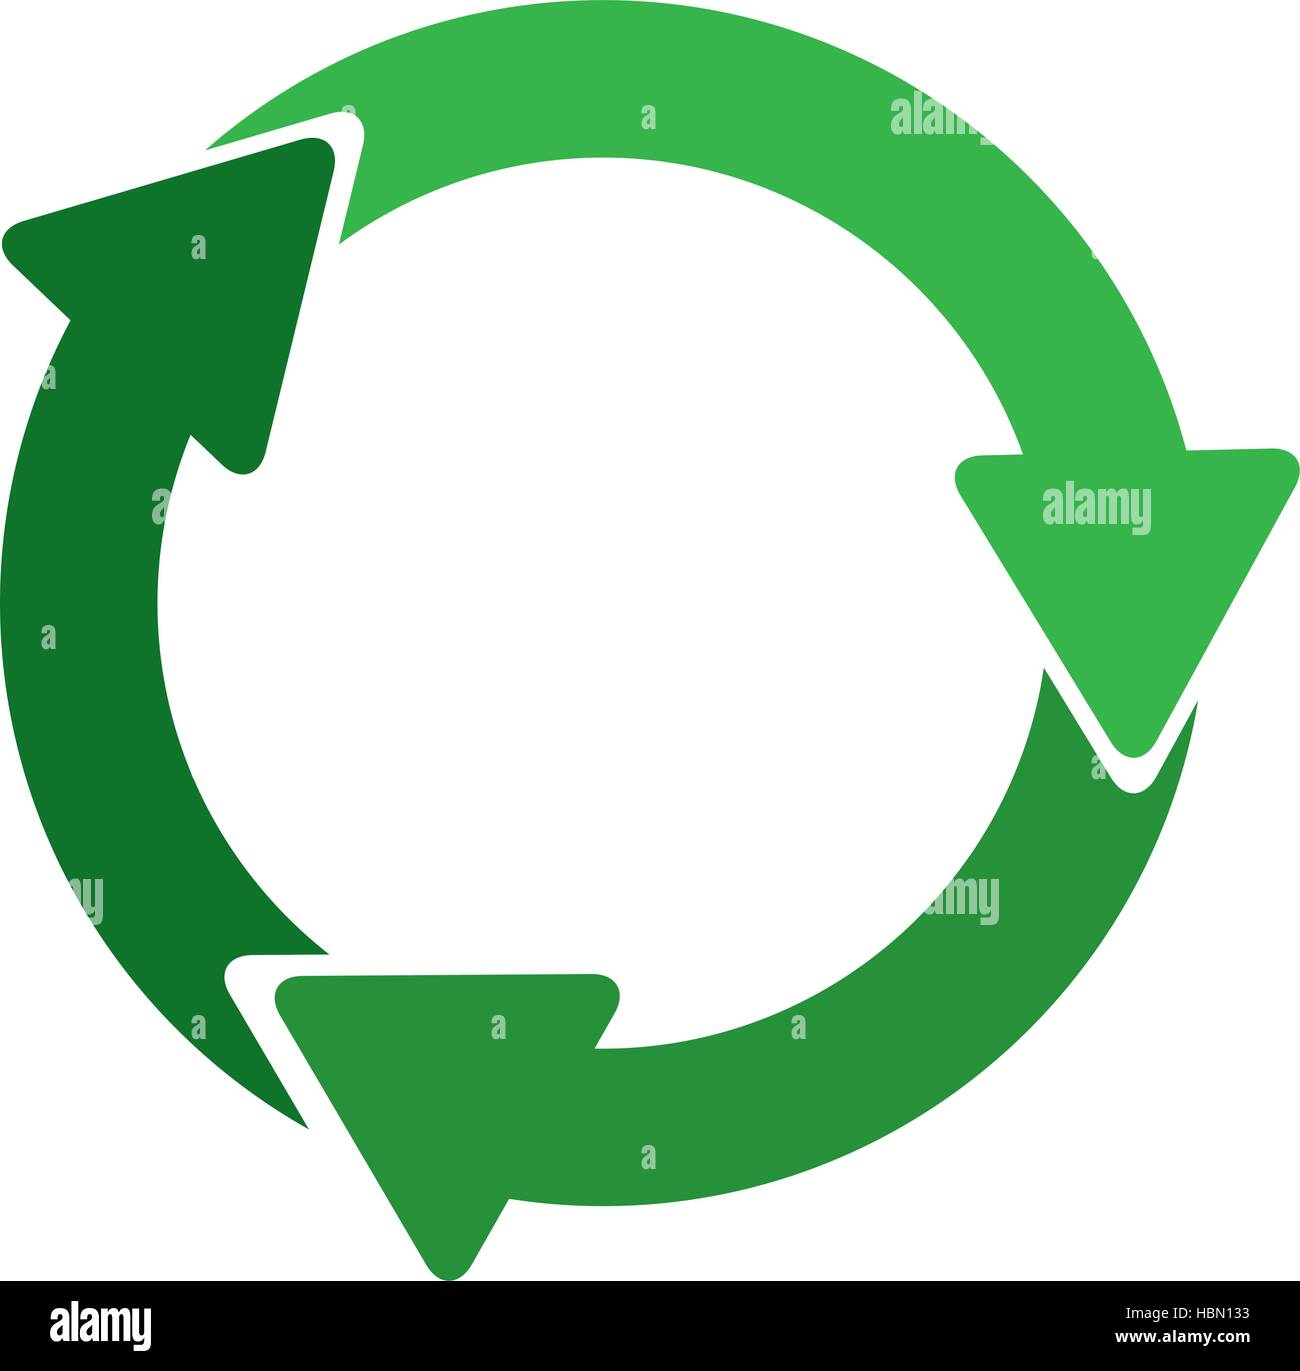 Pics of recycling symbol image collections symbol and sign ideas green circular recycling symbol shape with arrows vector green circular recycling symbol shape with arrows vector buycottarizona Choice Image